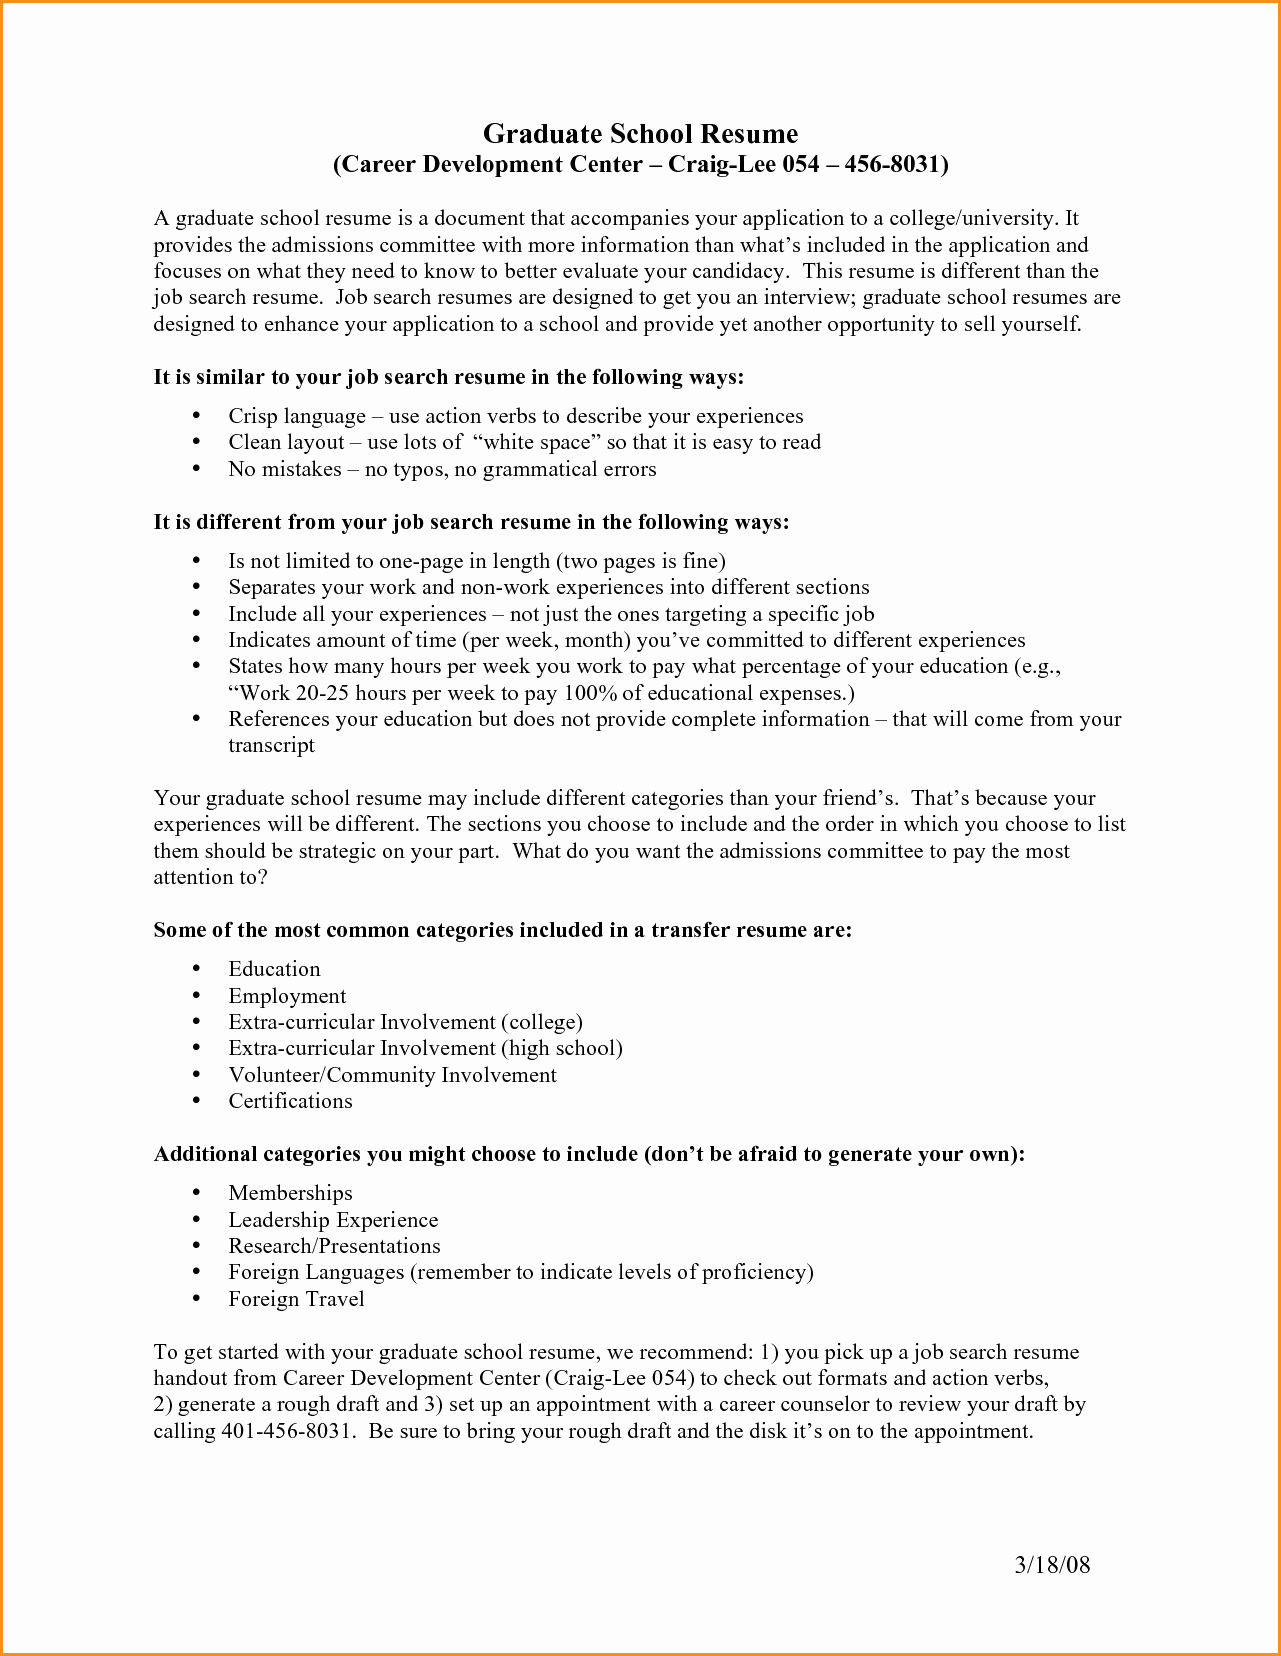 Graduate School Cv Template Lovely 5 Grad School Cv Samples